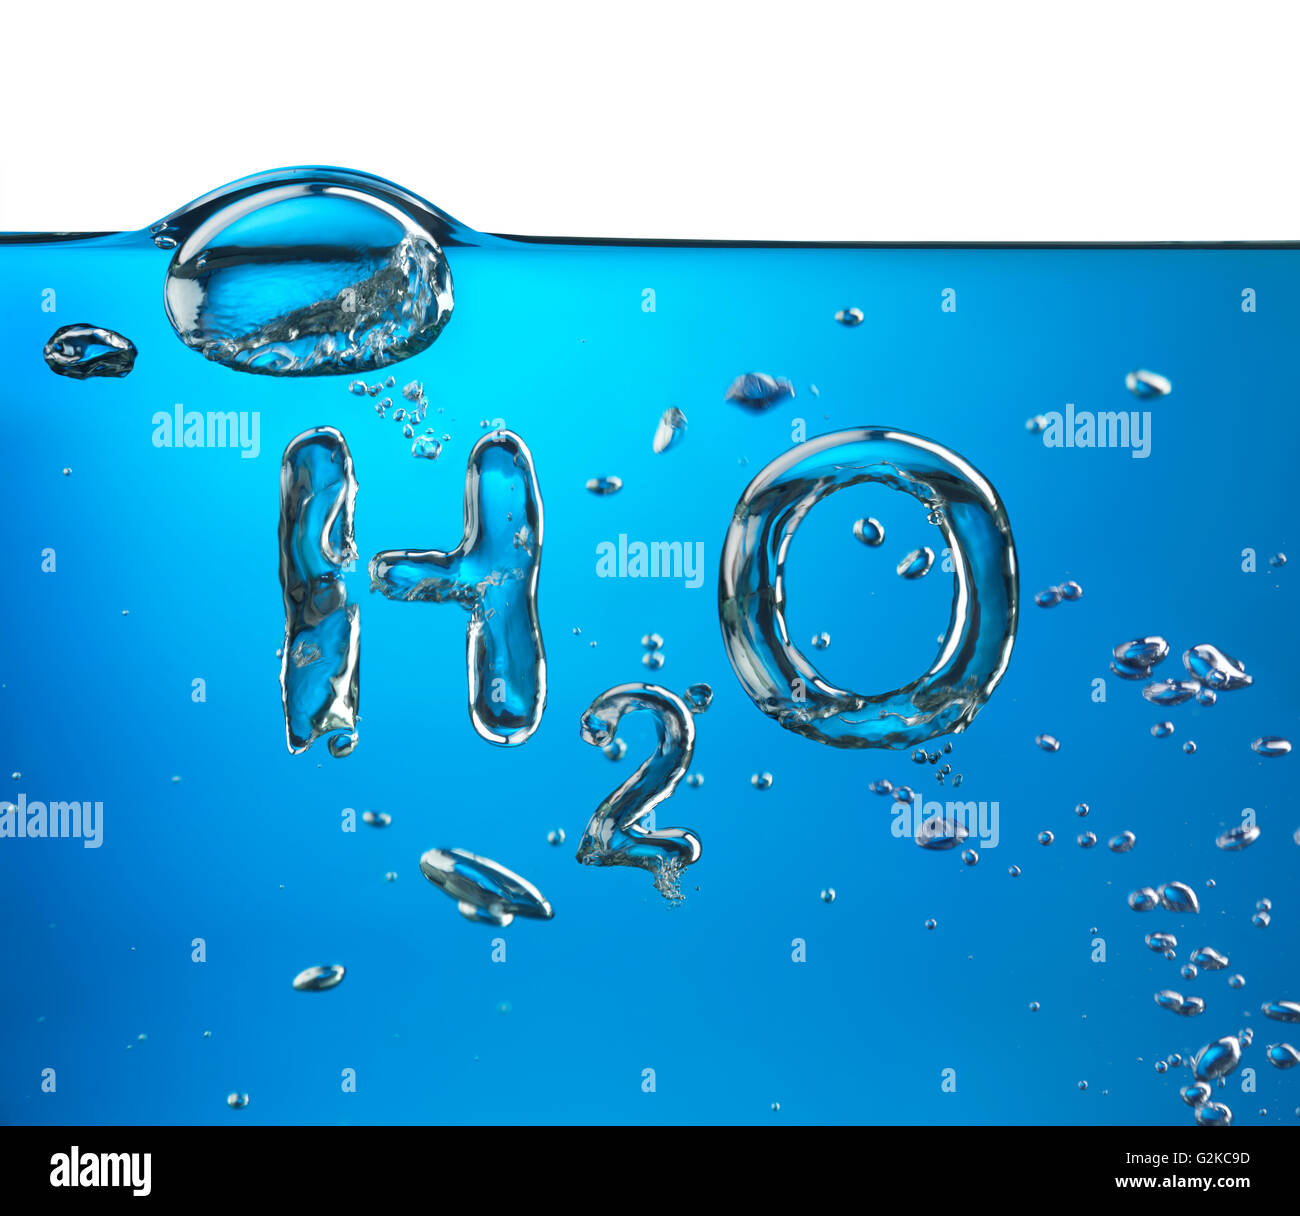 Formula of water, H2O, made of air bubbles in water - Stock Image